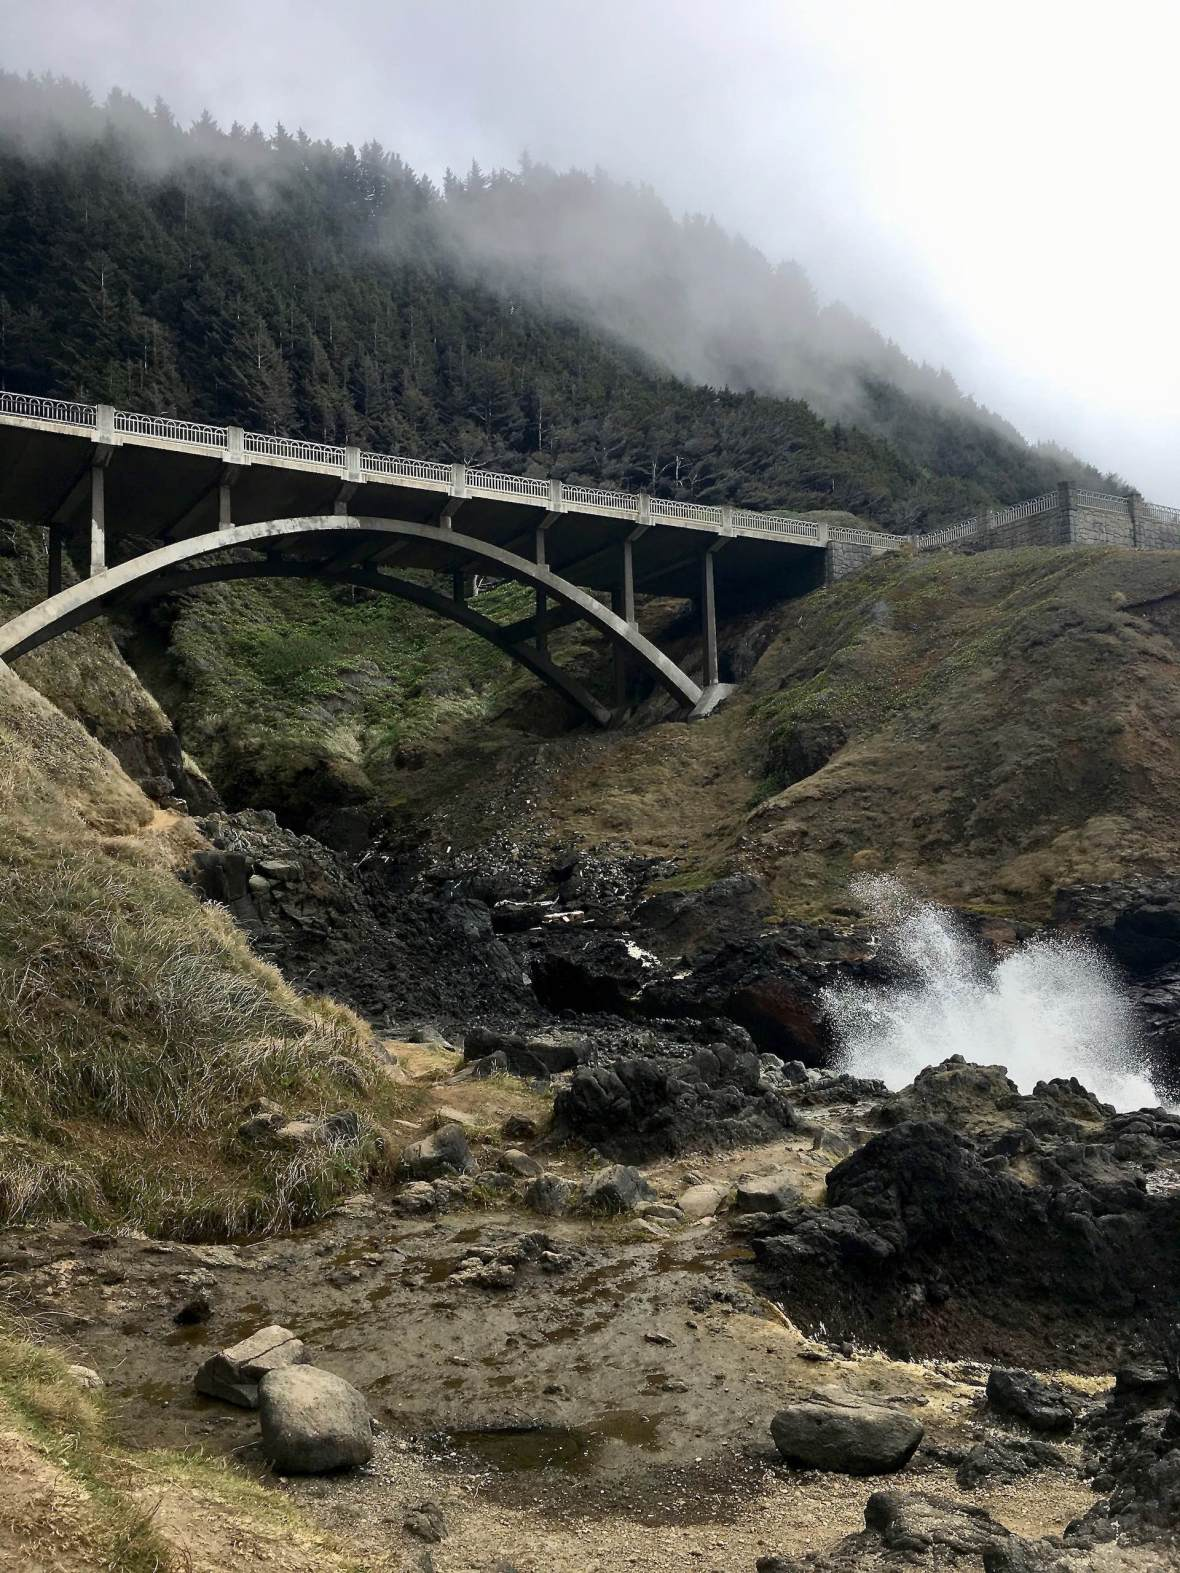 Bridge at Cook's Chasm Cape Perpetua Scenic Area Oregon Coast Highway 101